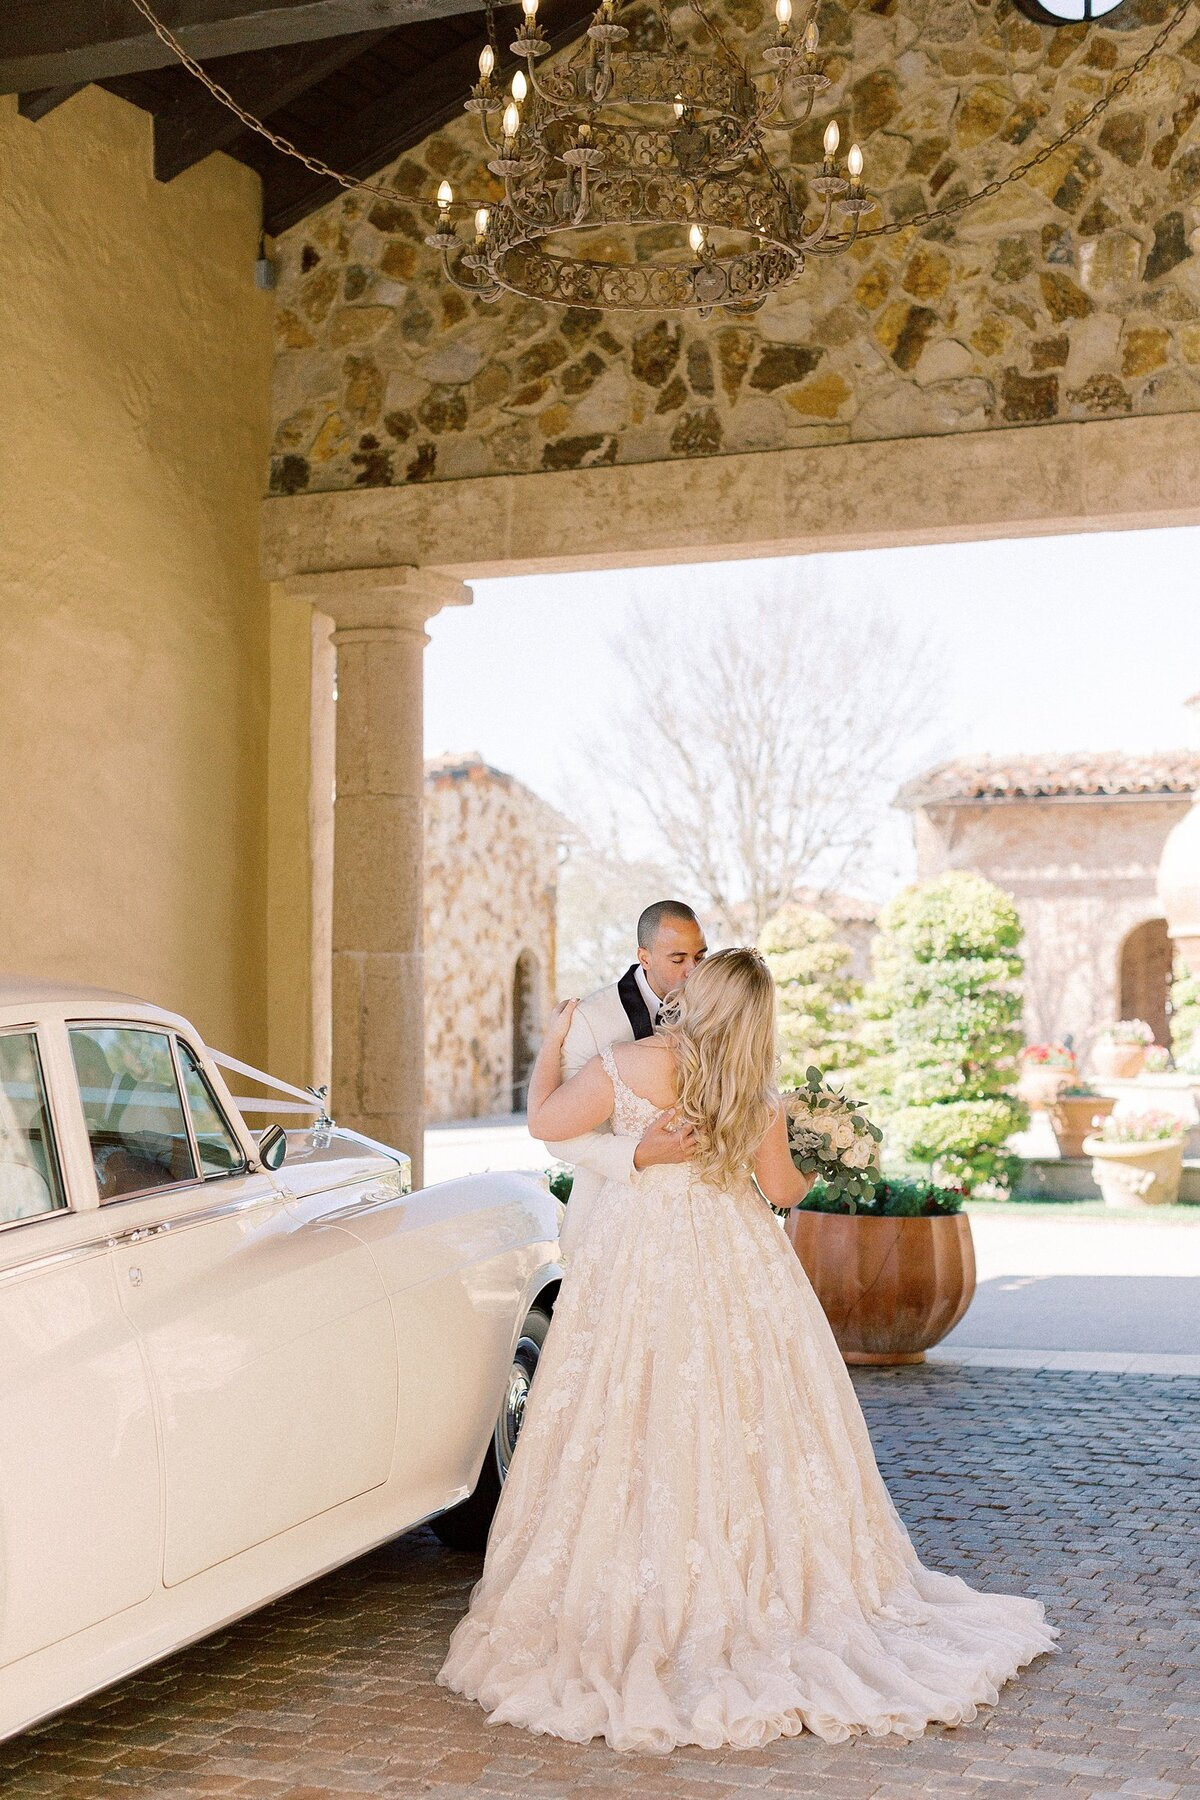 Manny + Rachel Bello 2.27.20 Bella Collina Wedding Photographer Casie Marie Photography Sneak peek-19